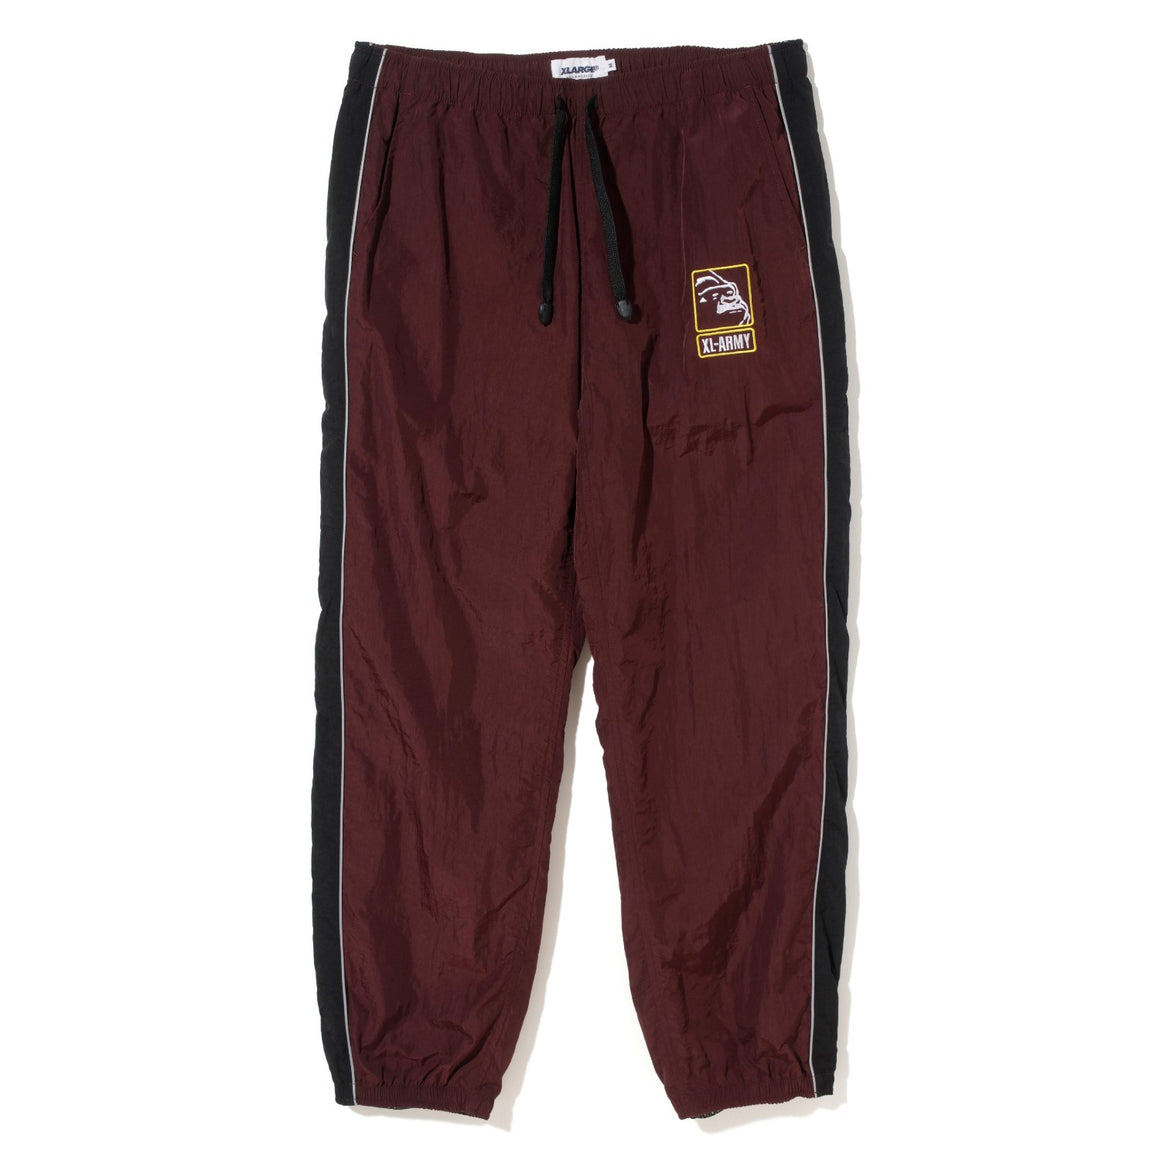 XL TRAINING PANT